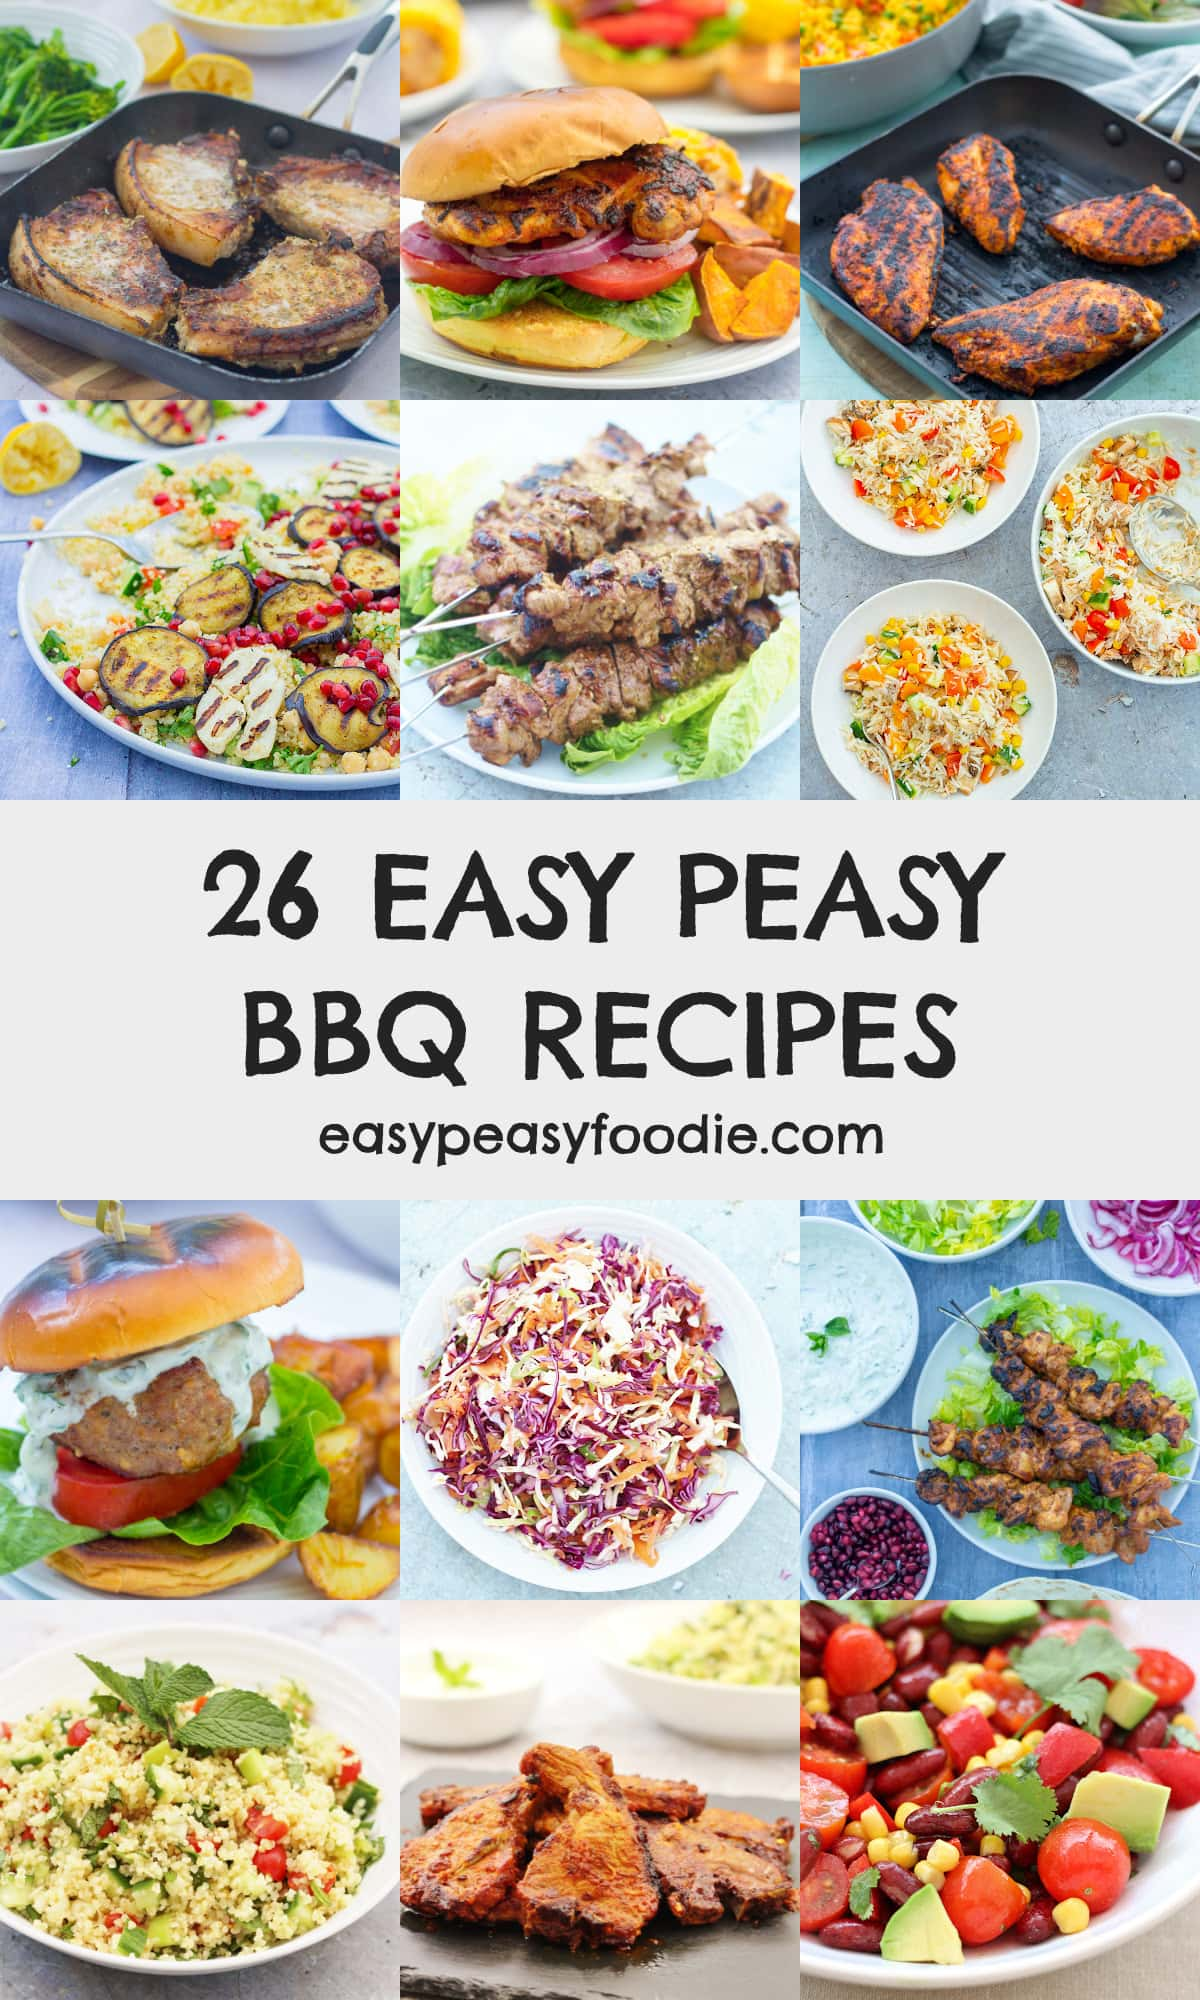 26 Easy Peasy BBQ Recipes - pinnable image for Pinterest